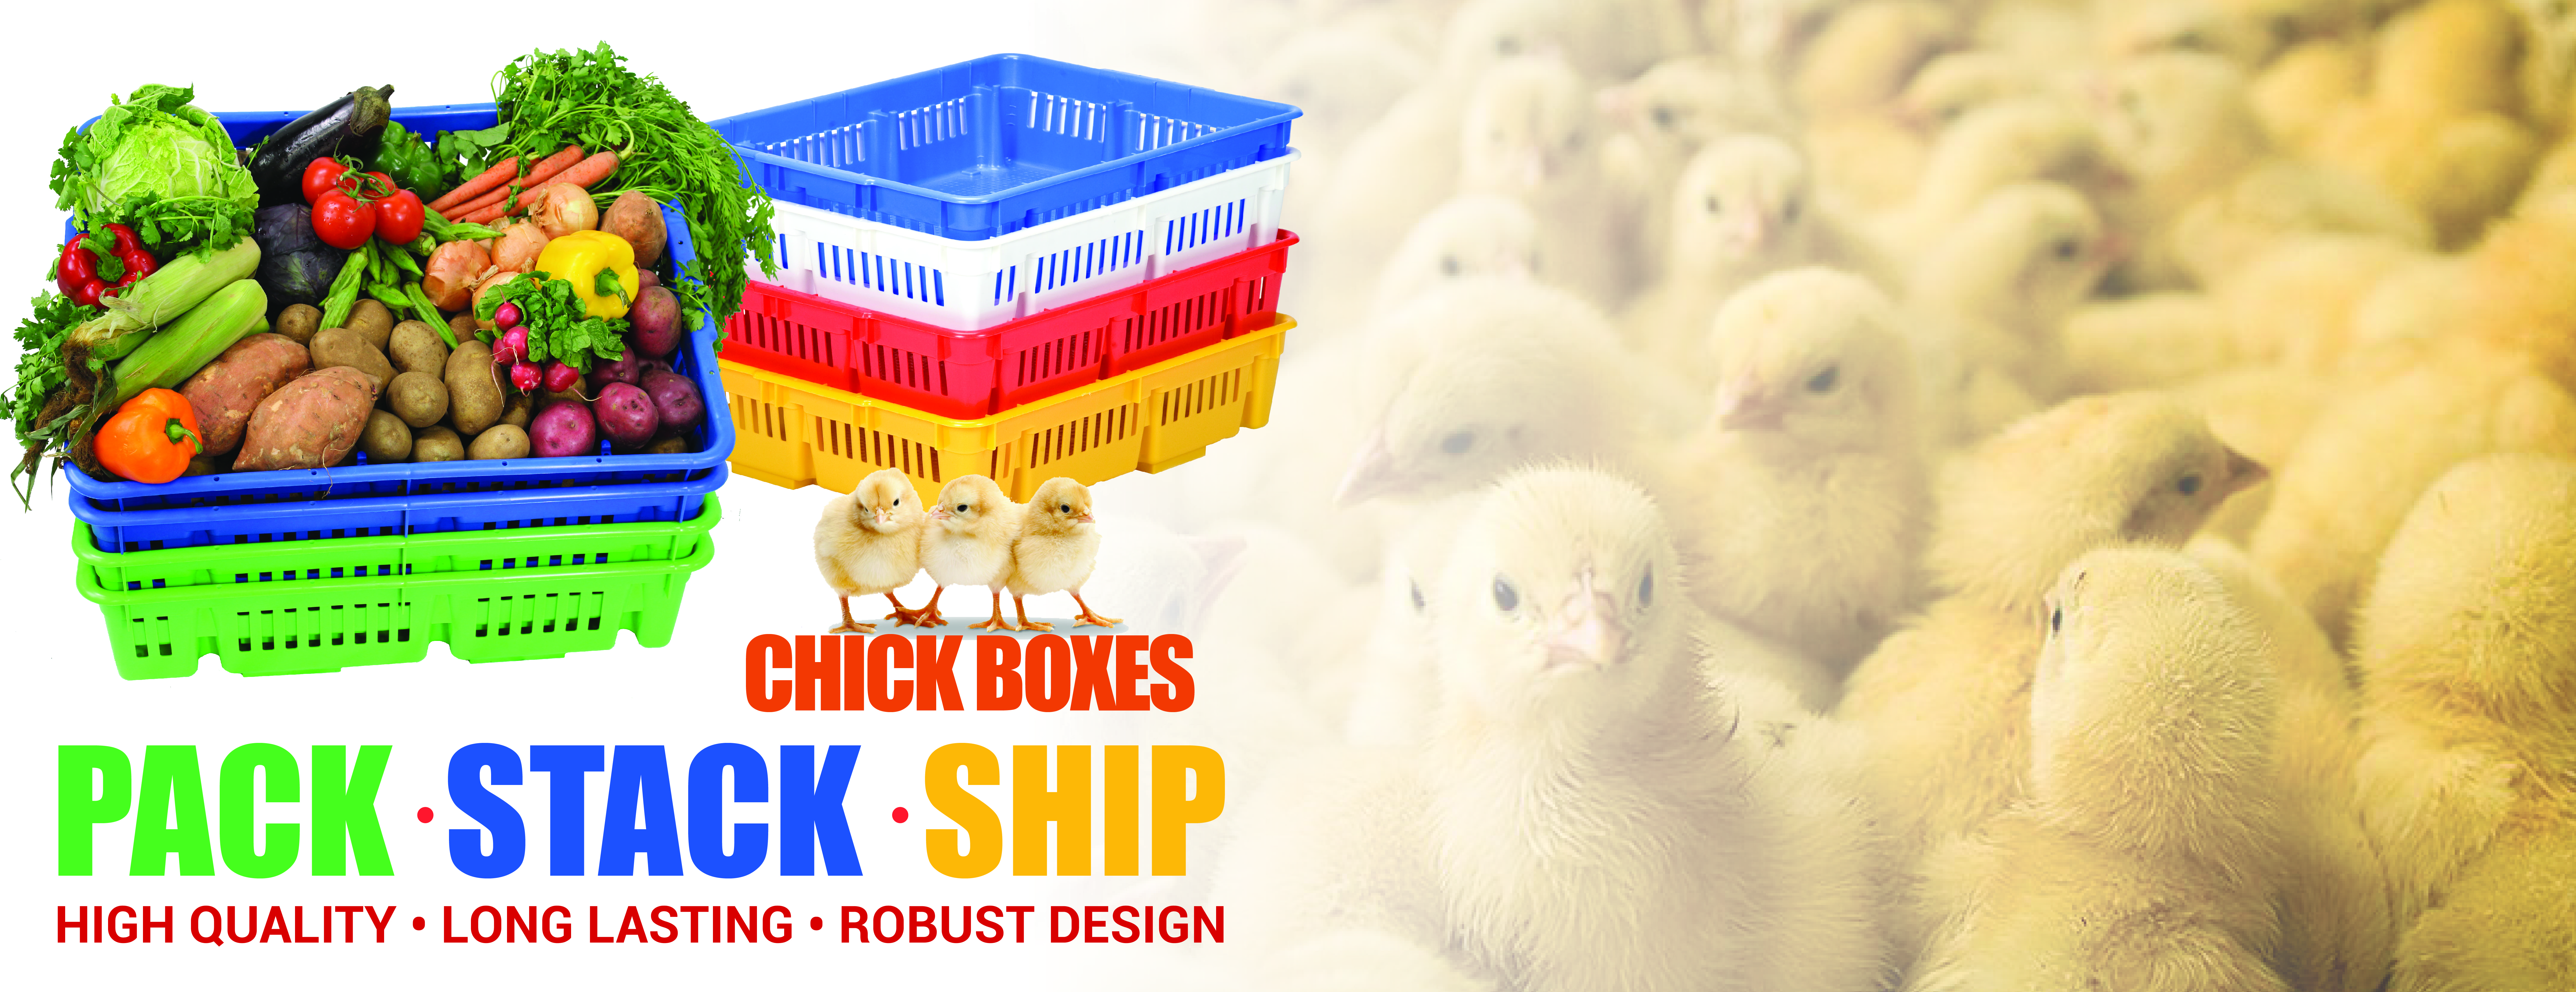 Pakster Poultry Products- 100% Made in the USA!